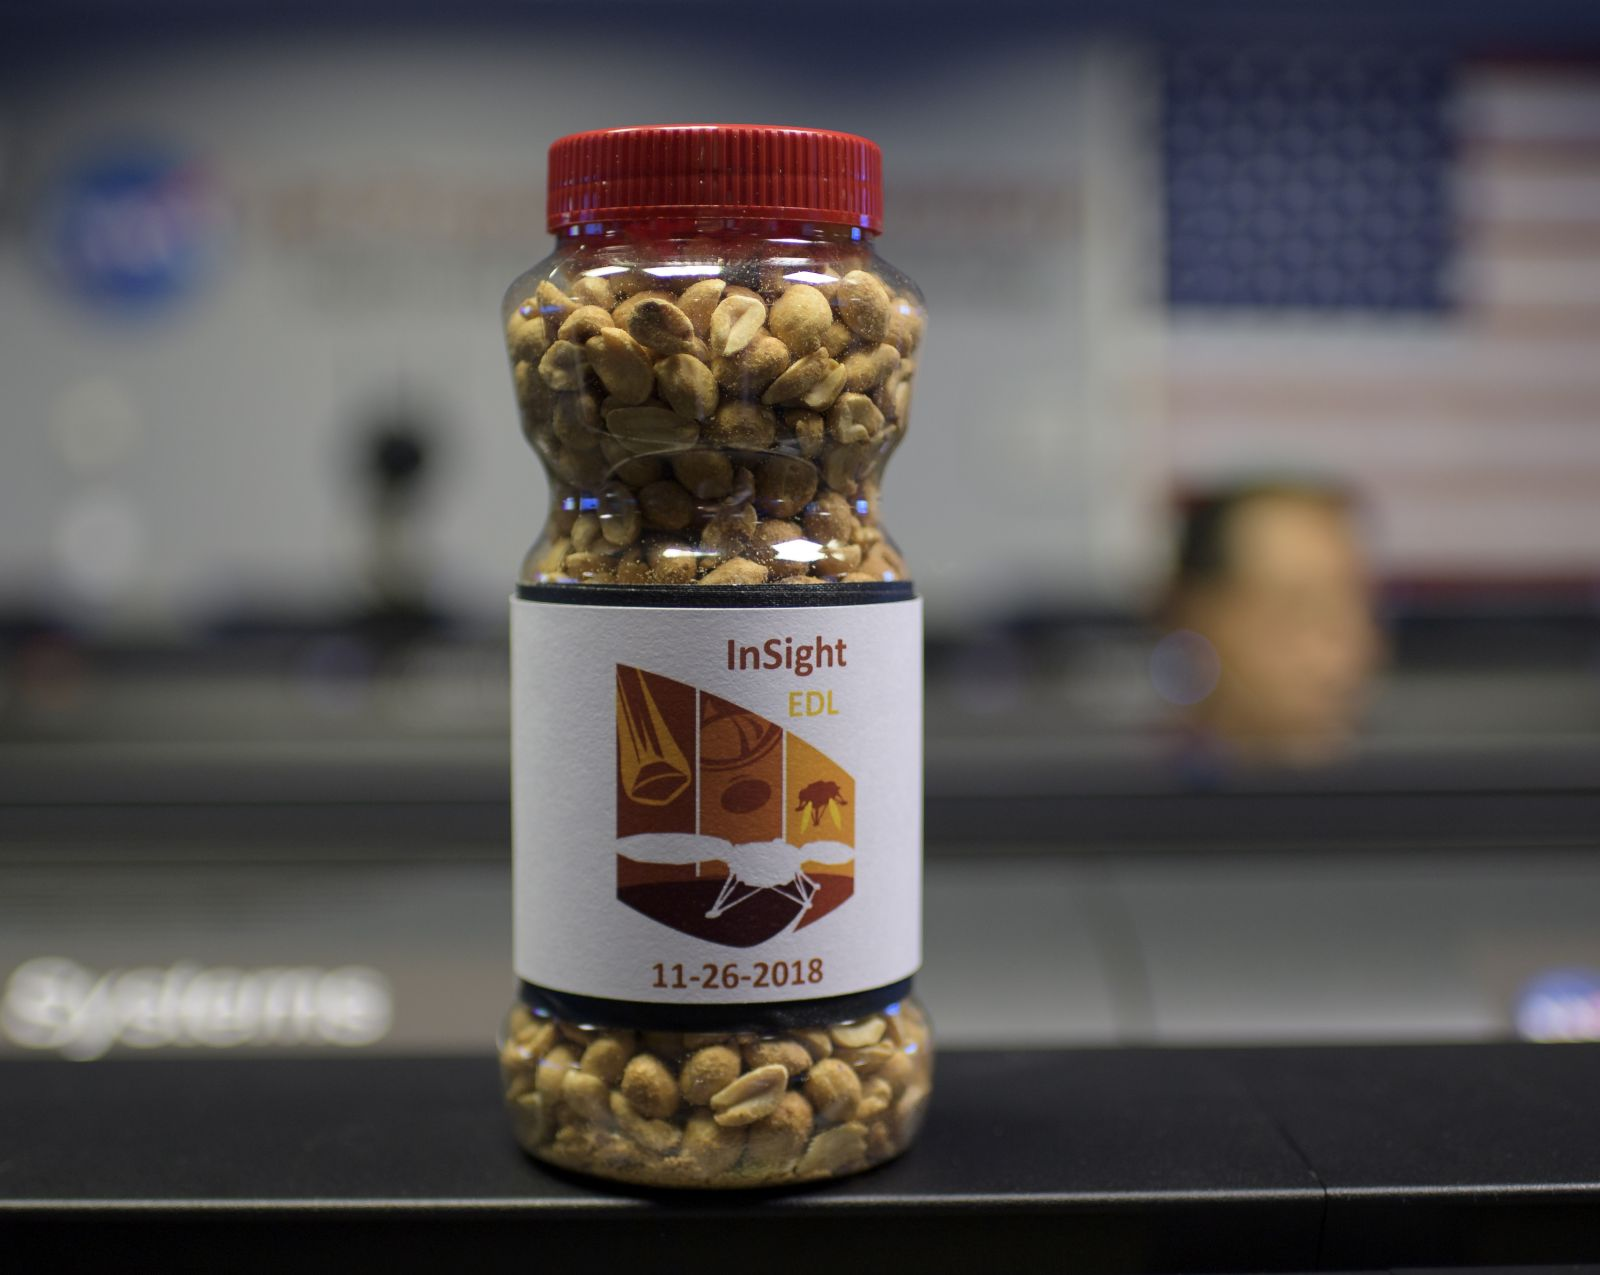 During 1964's Ranger 7 mission (which took place from July 28-31 of that year), NASA's Jet Propulsion Laboratory established a new tradition - lucky peanuts. With another successful landing under their belt, the nuts will likely be making appearances during future events. Photo Credit: Bill Ingalls / NASA